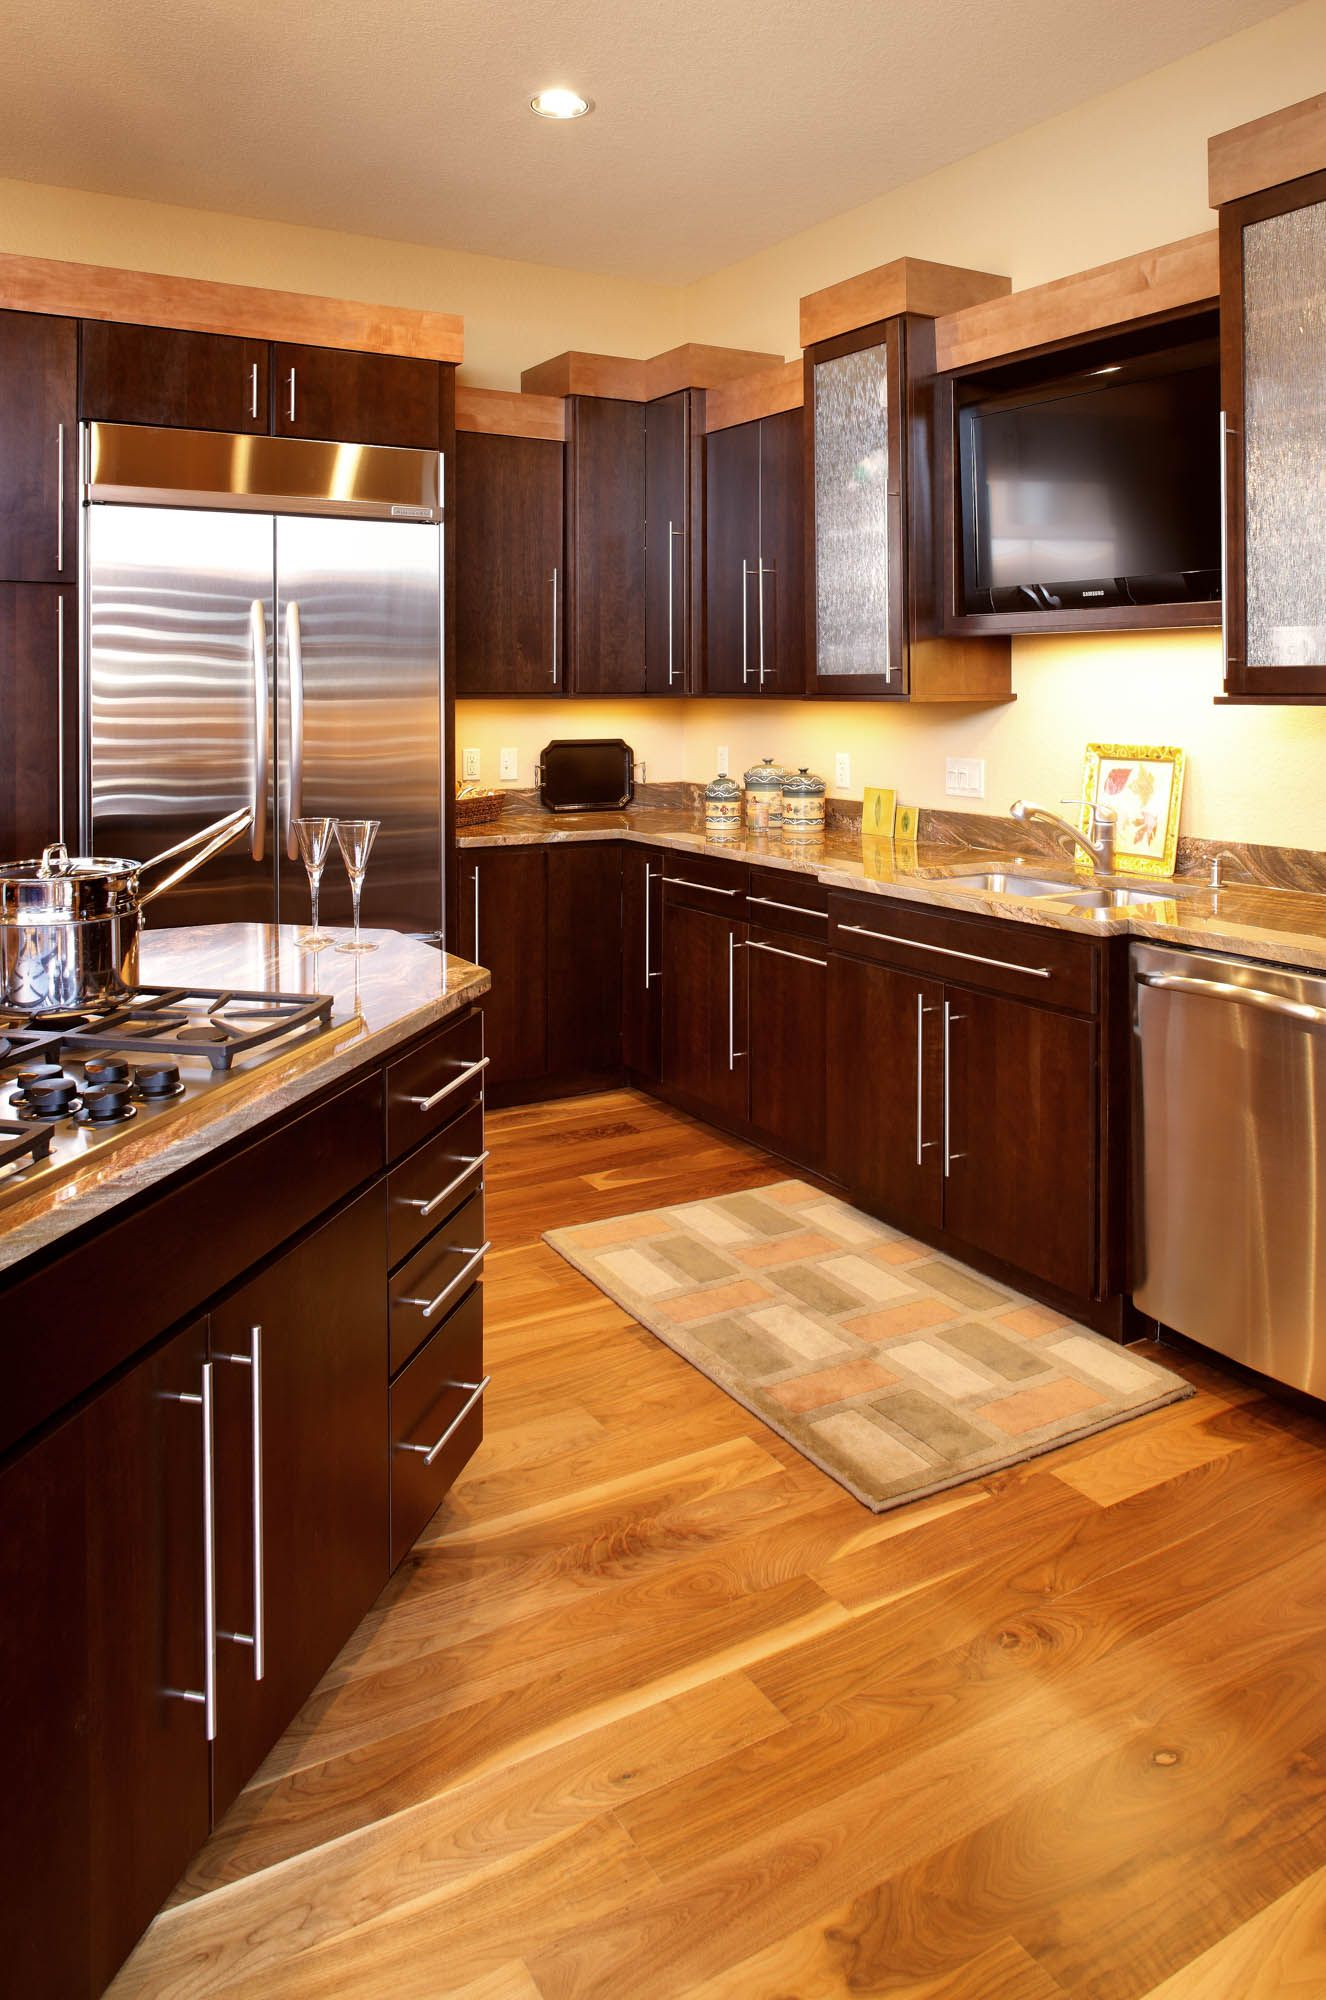 Stained Kitchen Cabinets In Coffee And Hazelnut By Showplace Cabinetry View 2 Kitchen Cabinets Kitchen Cabinet Colors Stained Kitchen Cabinets